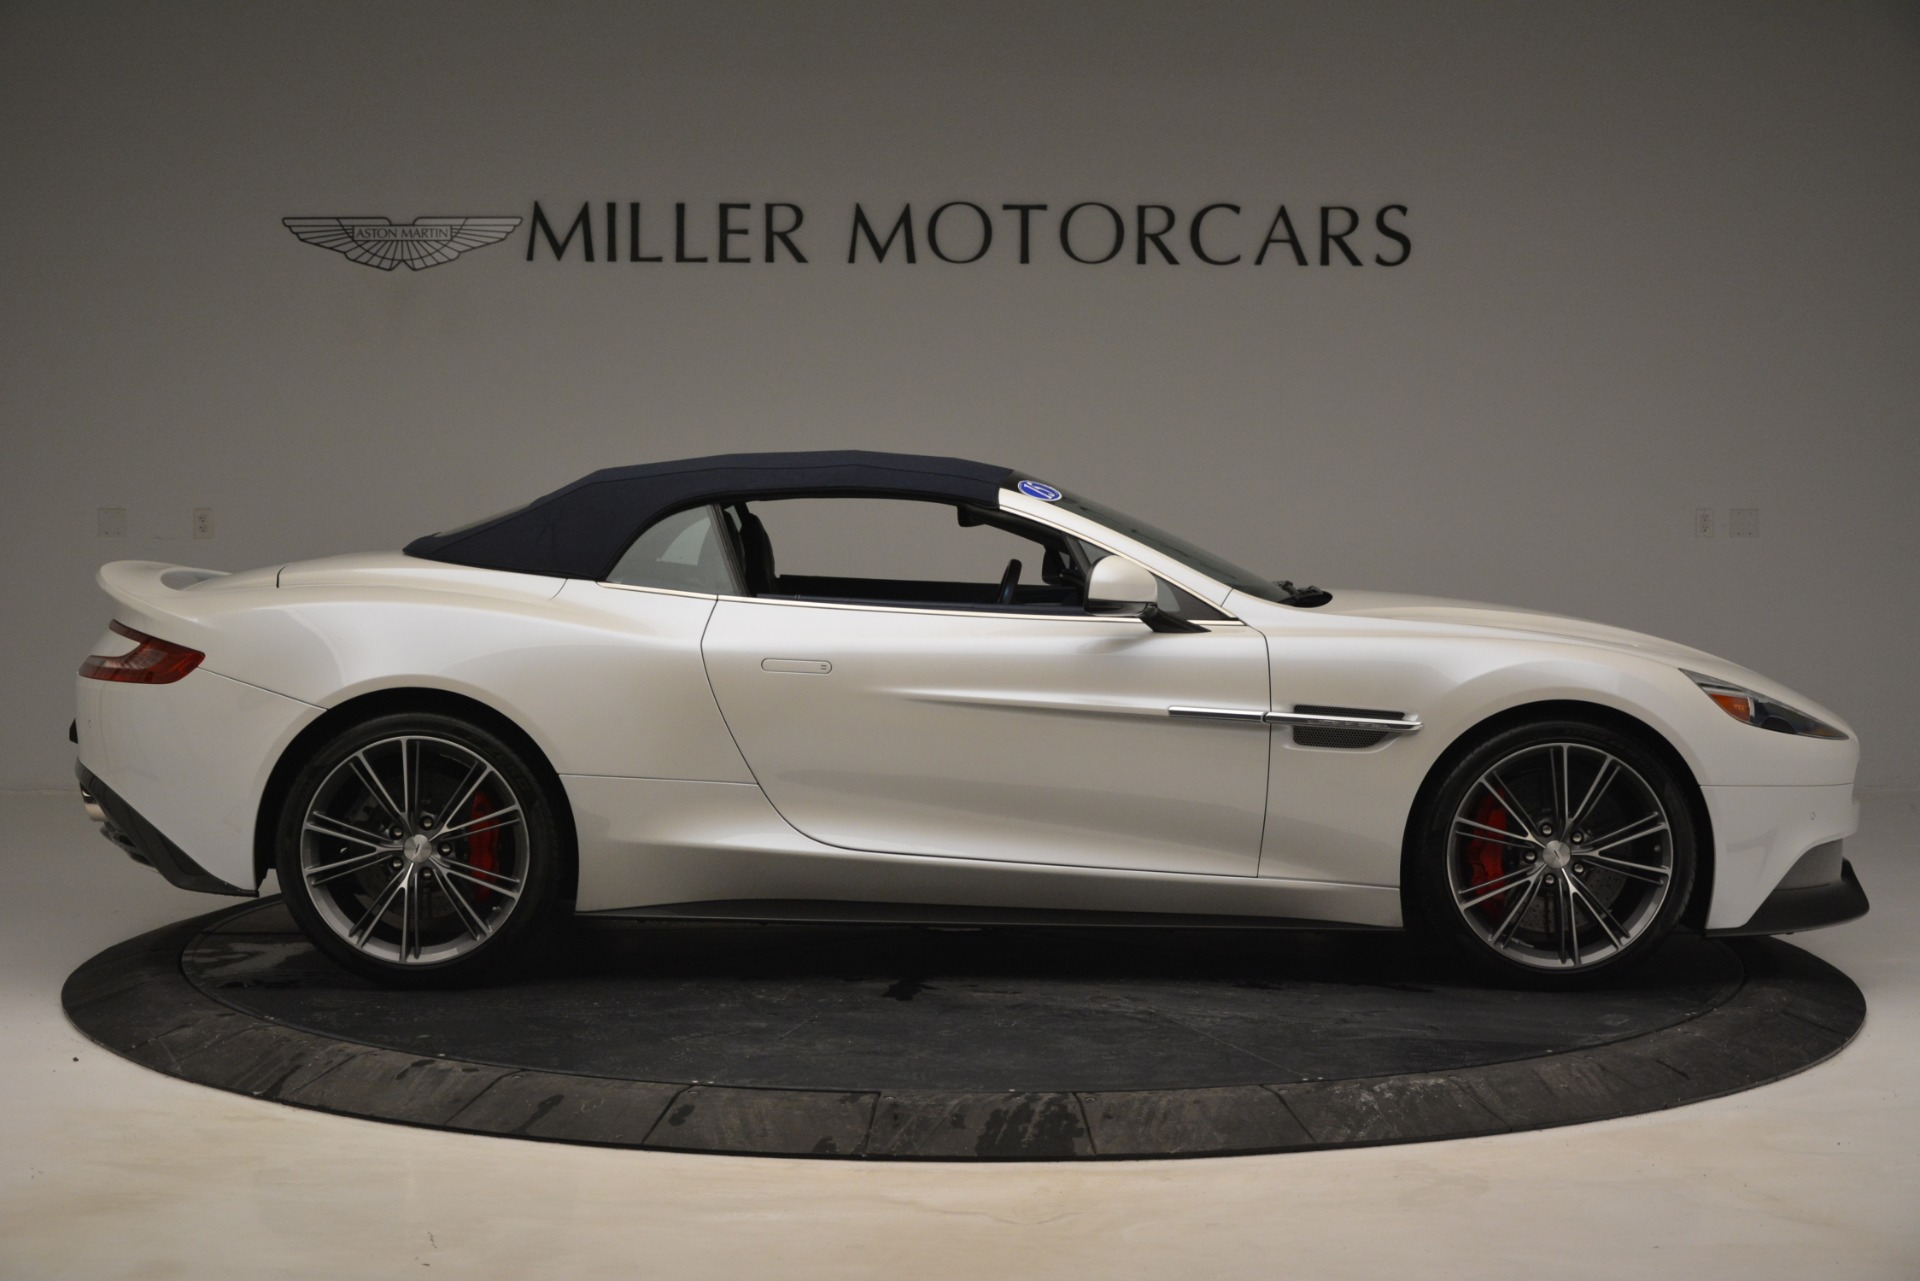 Used 2015 Aston Martin Vanquish Convertible For Sale In Westport, CT 2982_p17